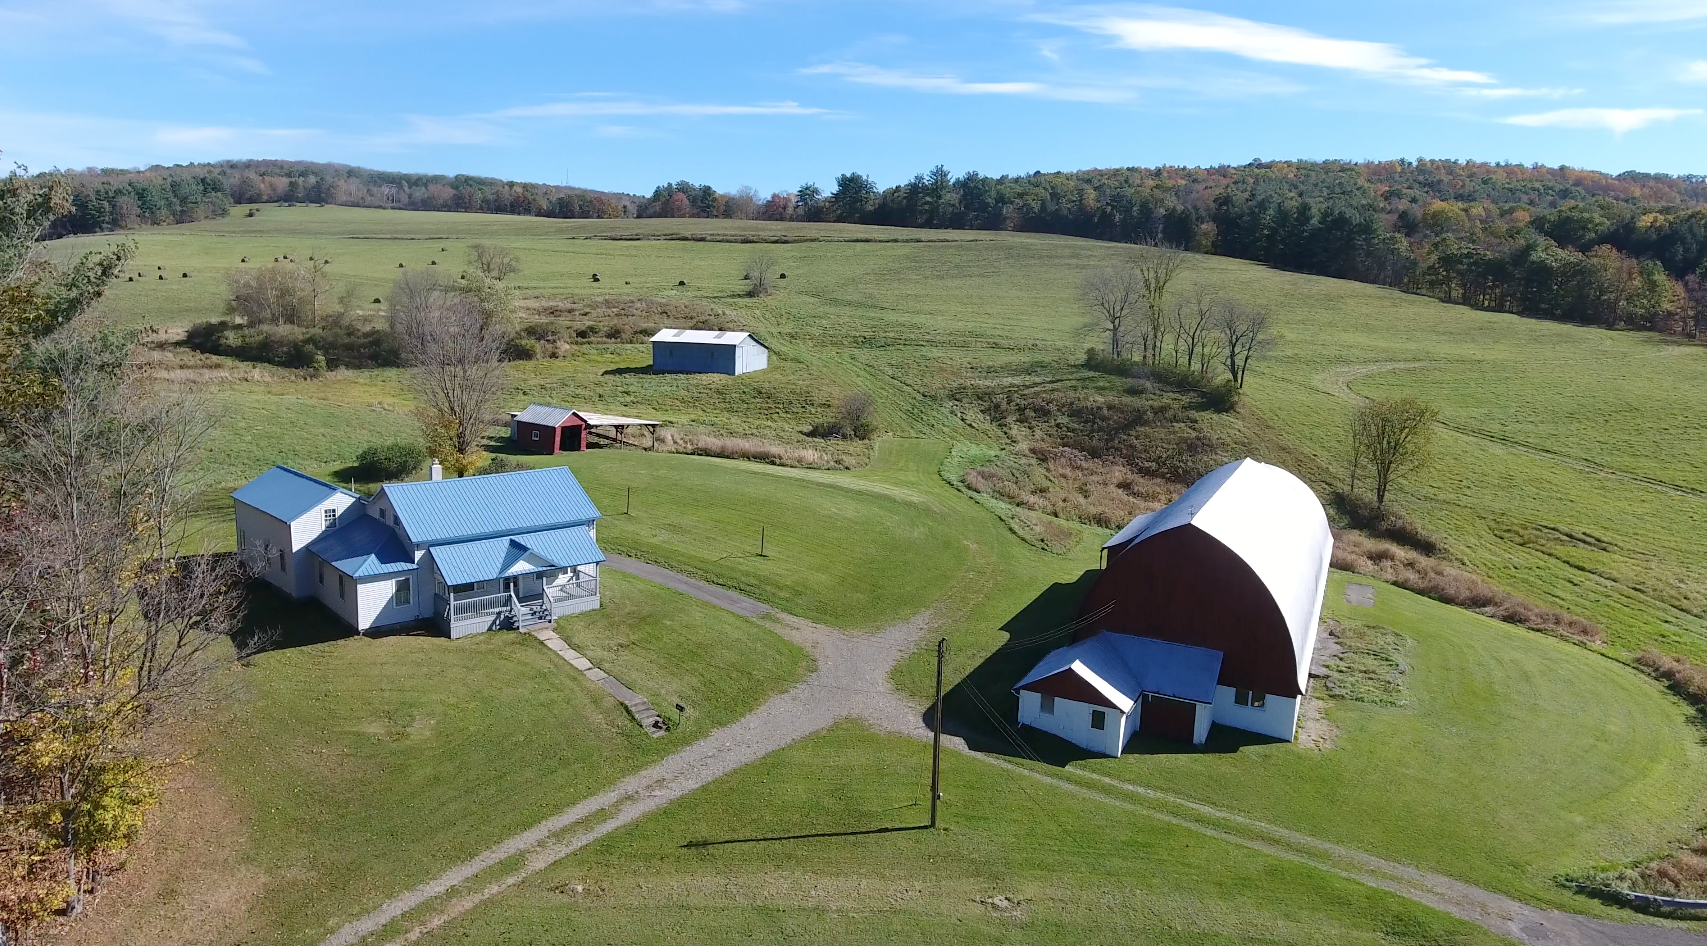 FAMILY FARM- GOOD FARMHOUSE, BARN, 155 ACRES-BROOME CO., NY